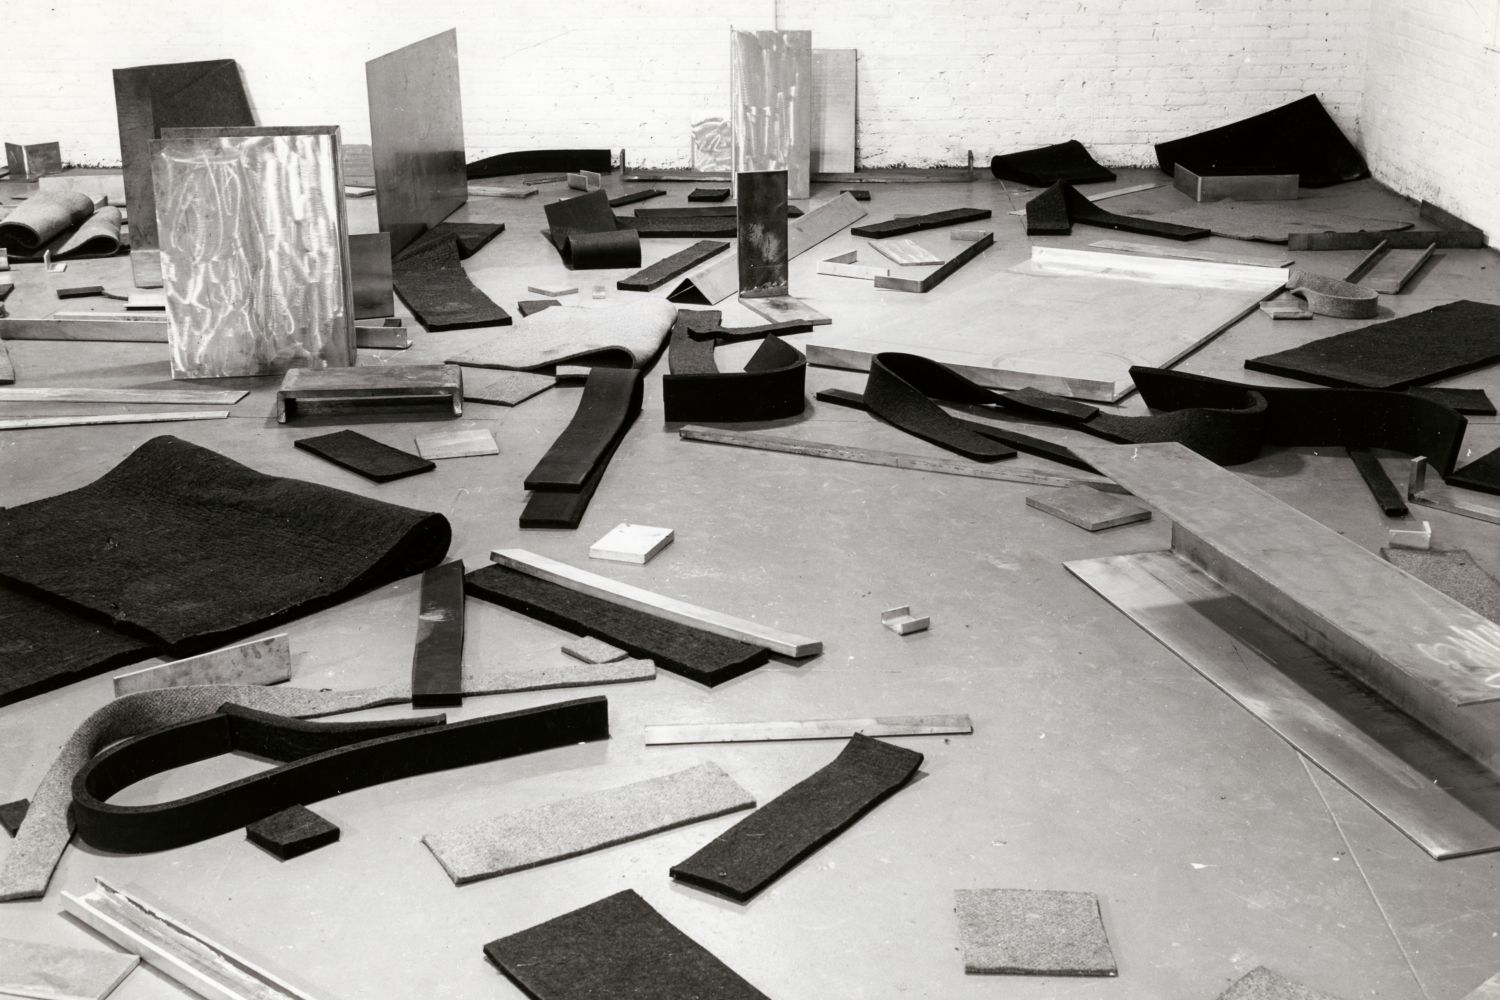 """Robert Morris, """"Untitled (Scatter Piece)"""", 1968-1969/2009. Collection The Art Institute of Chicago. Through prior gift of Mr. and Mrs. Edwin Hokin; Contemporary Art Discretionary Fund; Anonymous gift; restricted gift of Janet and Craig Duchossois; Norman Wait Harris Purchase Fund; W.L. Mead Trust Fund for the Encouragement of Art; Mr. and Mrs. Frank G. Logan Fund; Restricted gift of Judith Neisser; Watson F. Blair Prize, Emile L. Wild, William H. Bartles, and Laura Slobe Memorial Prize funds"""